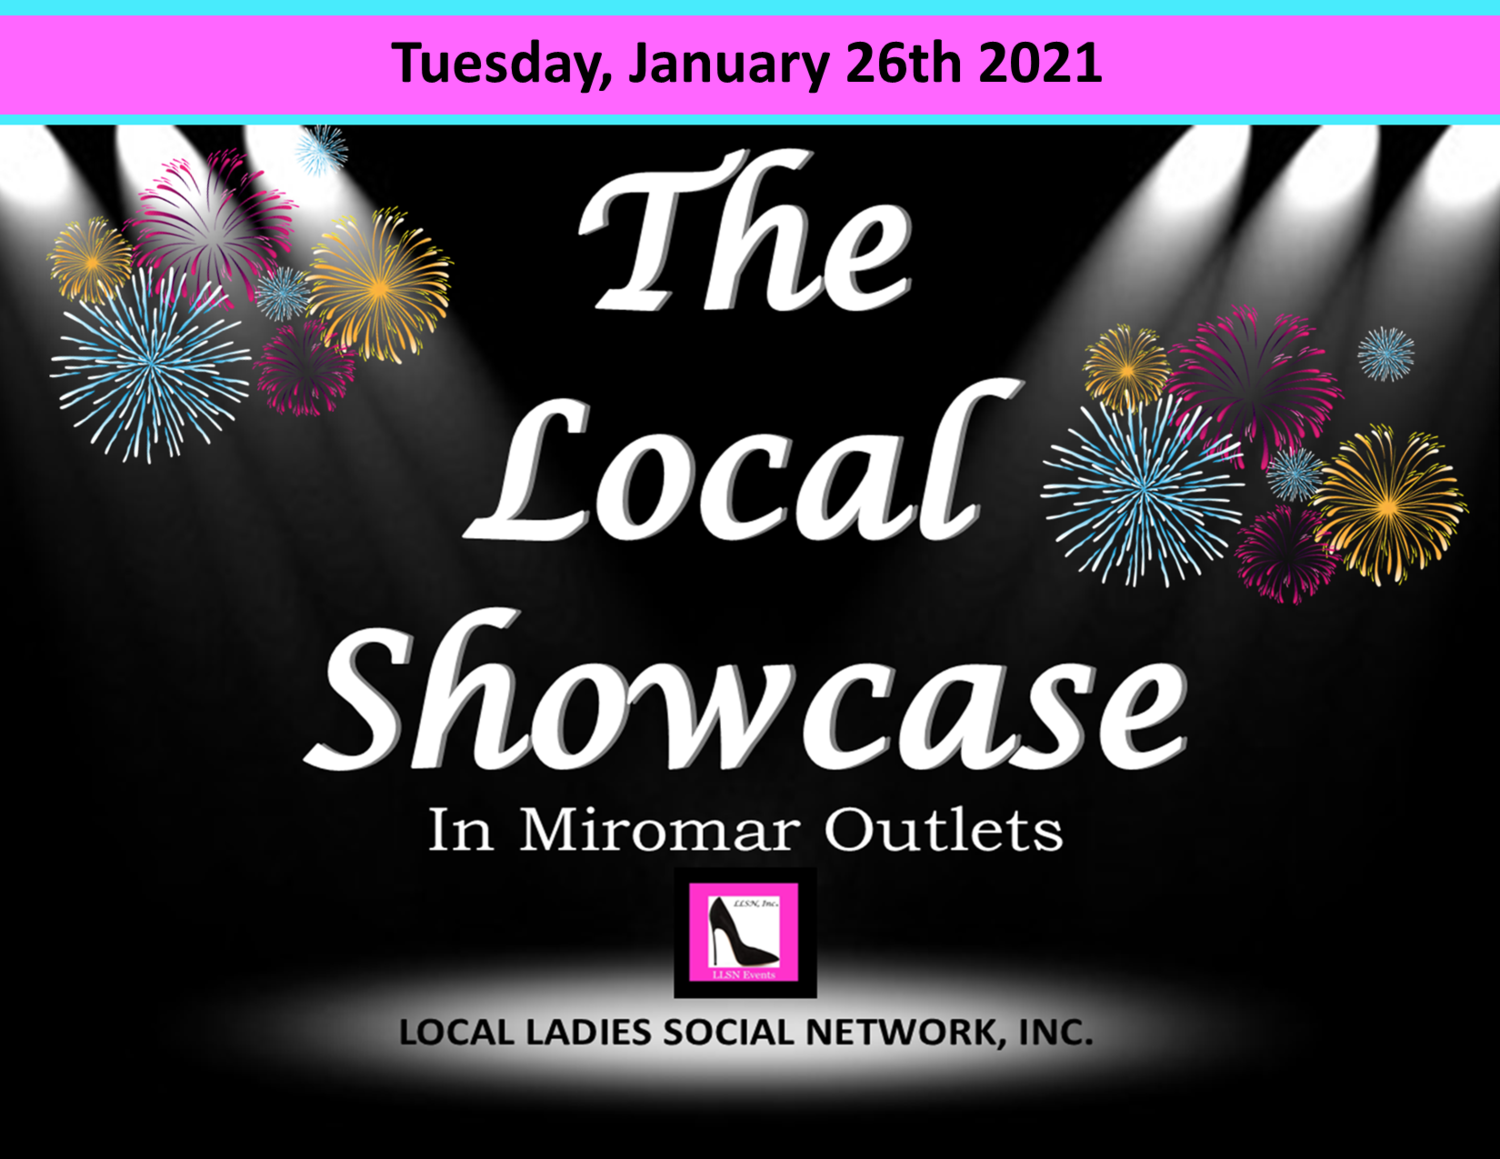 Tuesday, January 26th 11am-7pm.